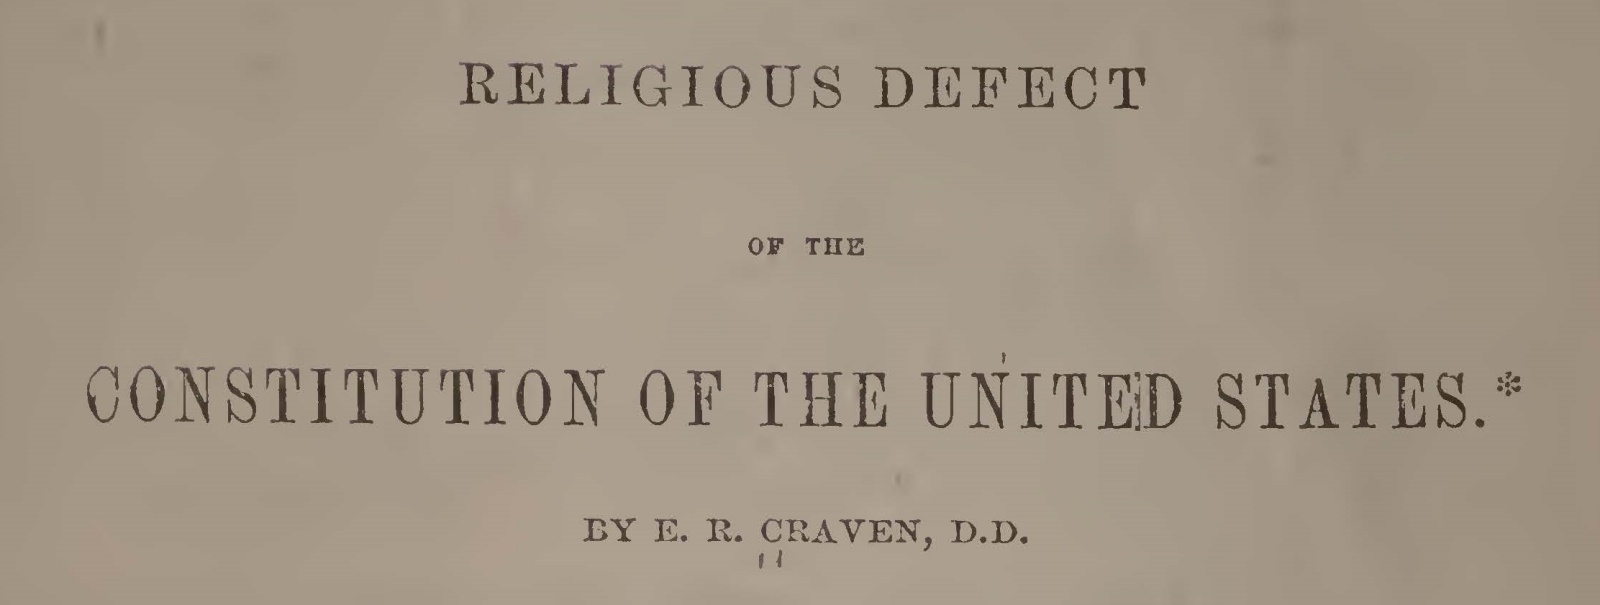 Craven, Elijah Richardson, The Religious Defect of the Constitution of the US Title Page.jpg